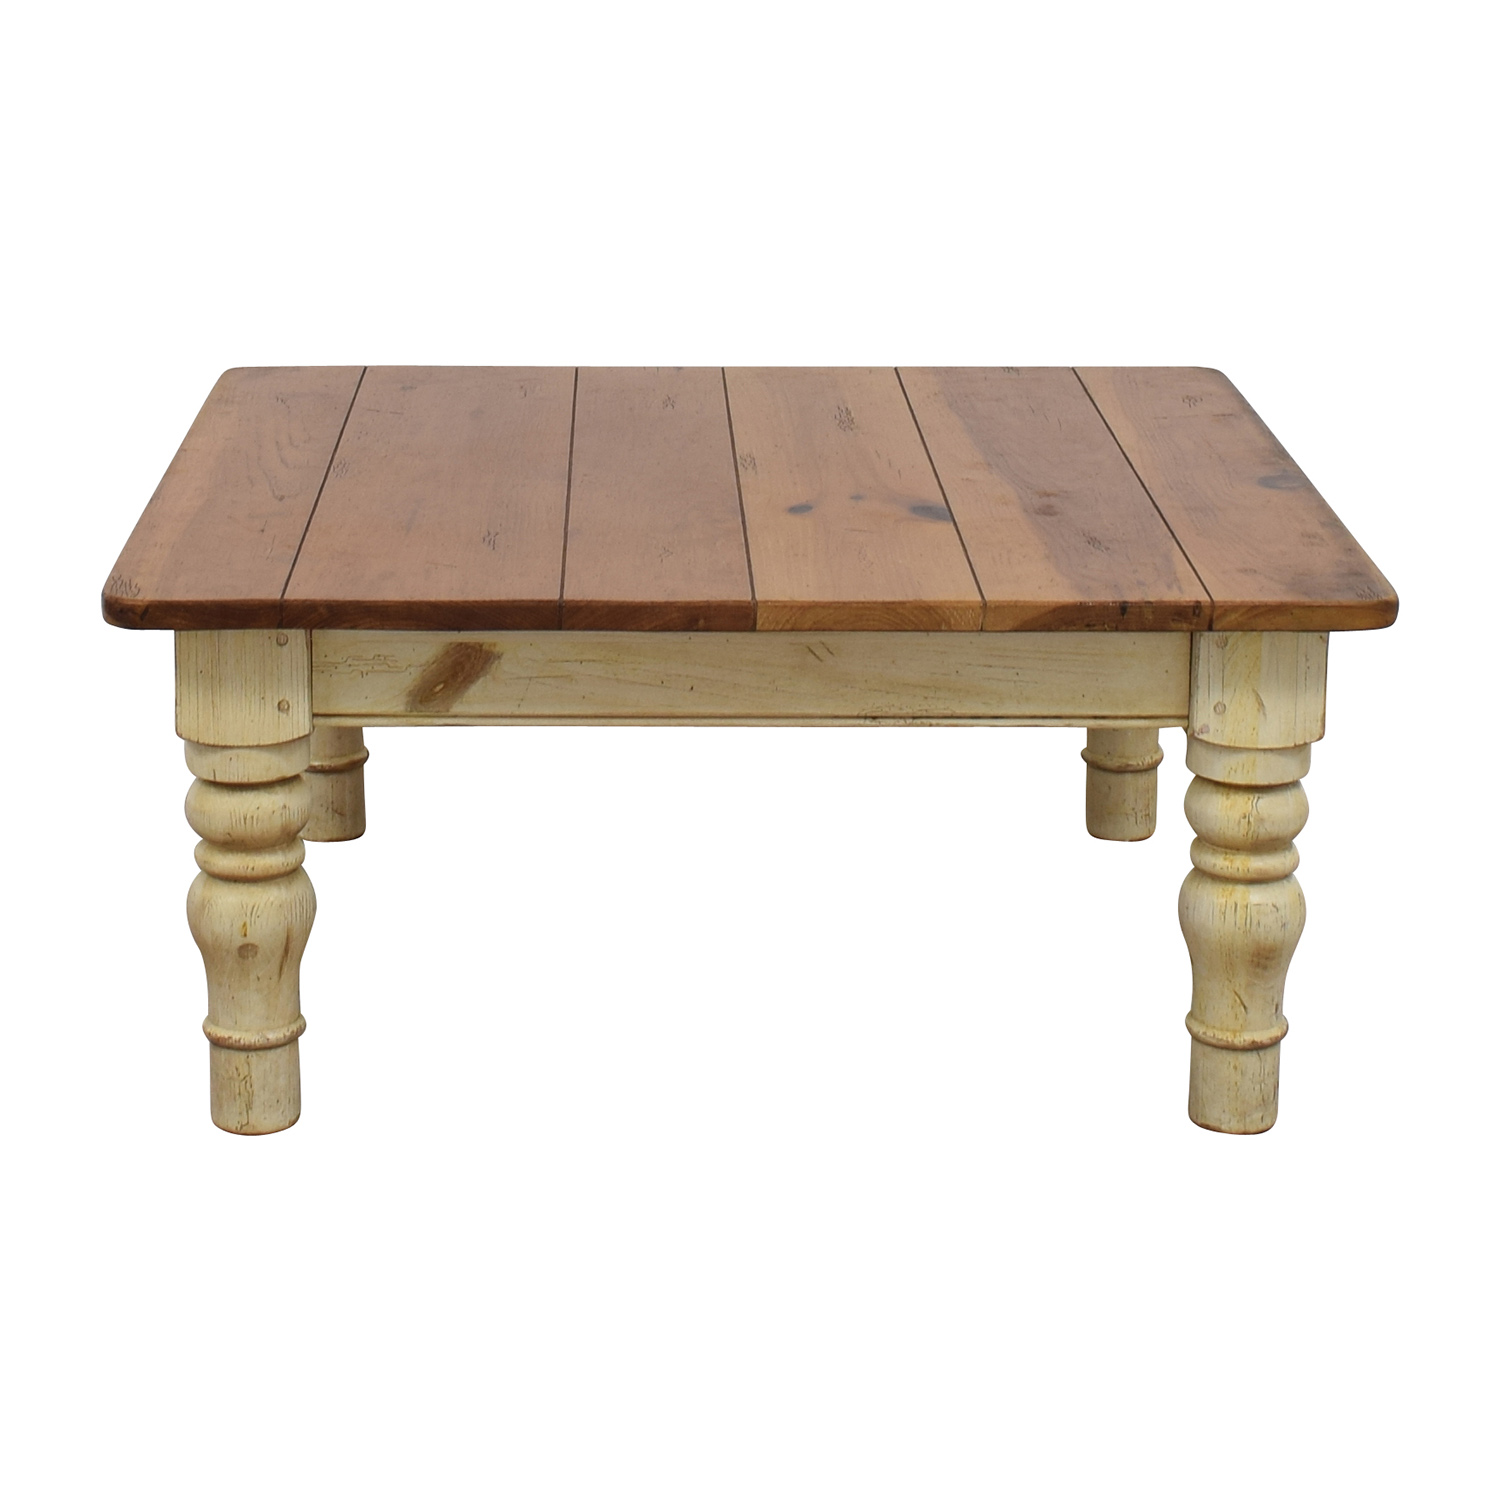 Ethan Allen Ethan Allen Farmhouse Cherry Wood Coffee Table Used ...